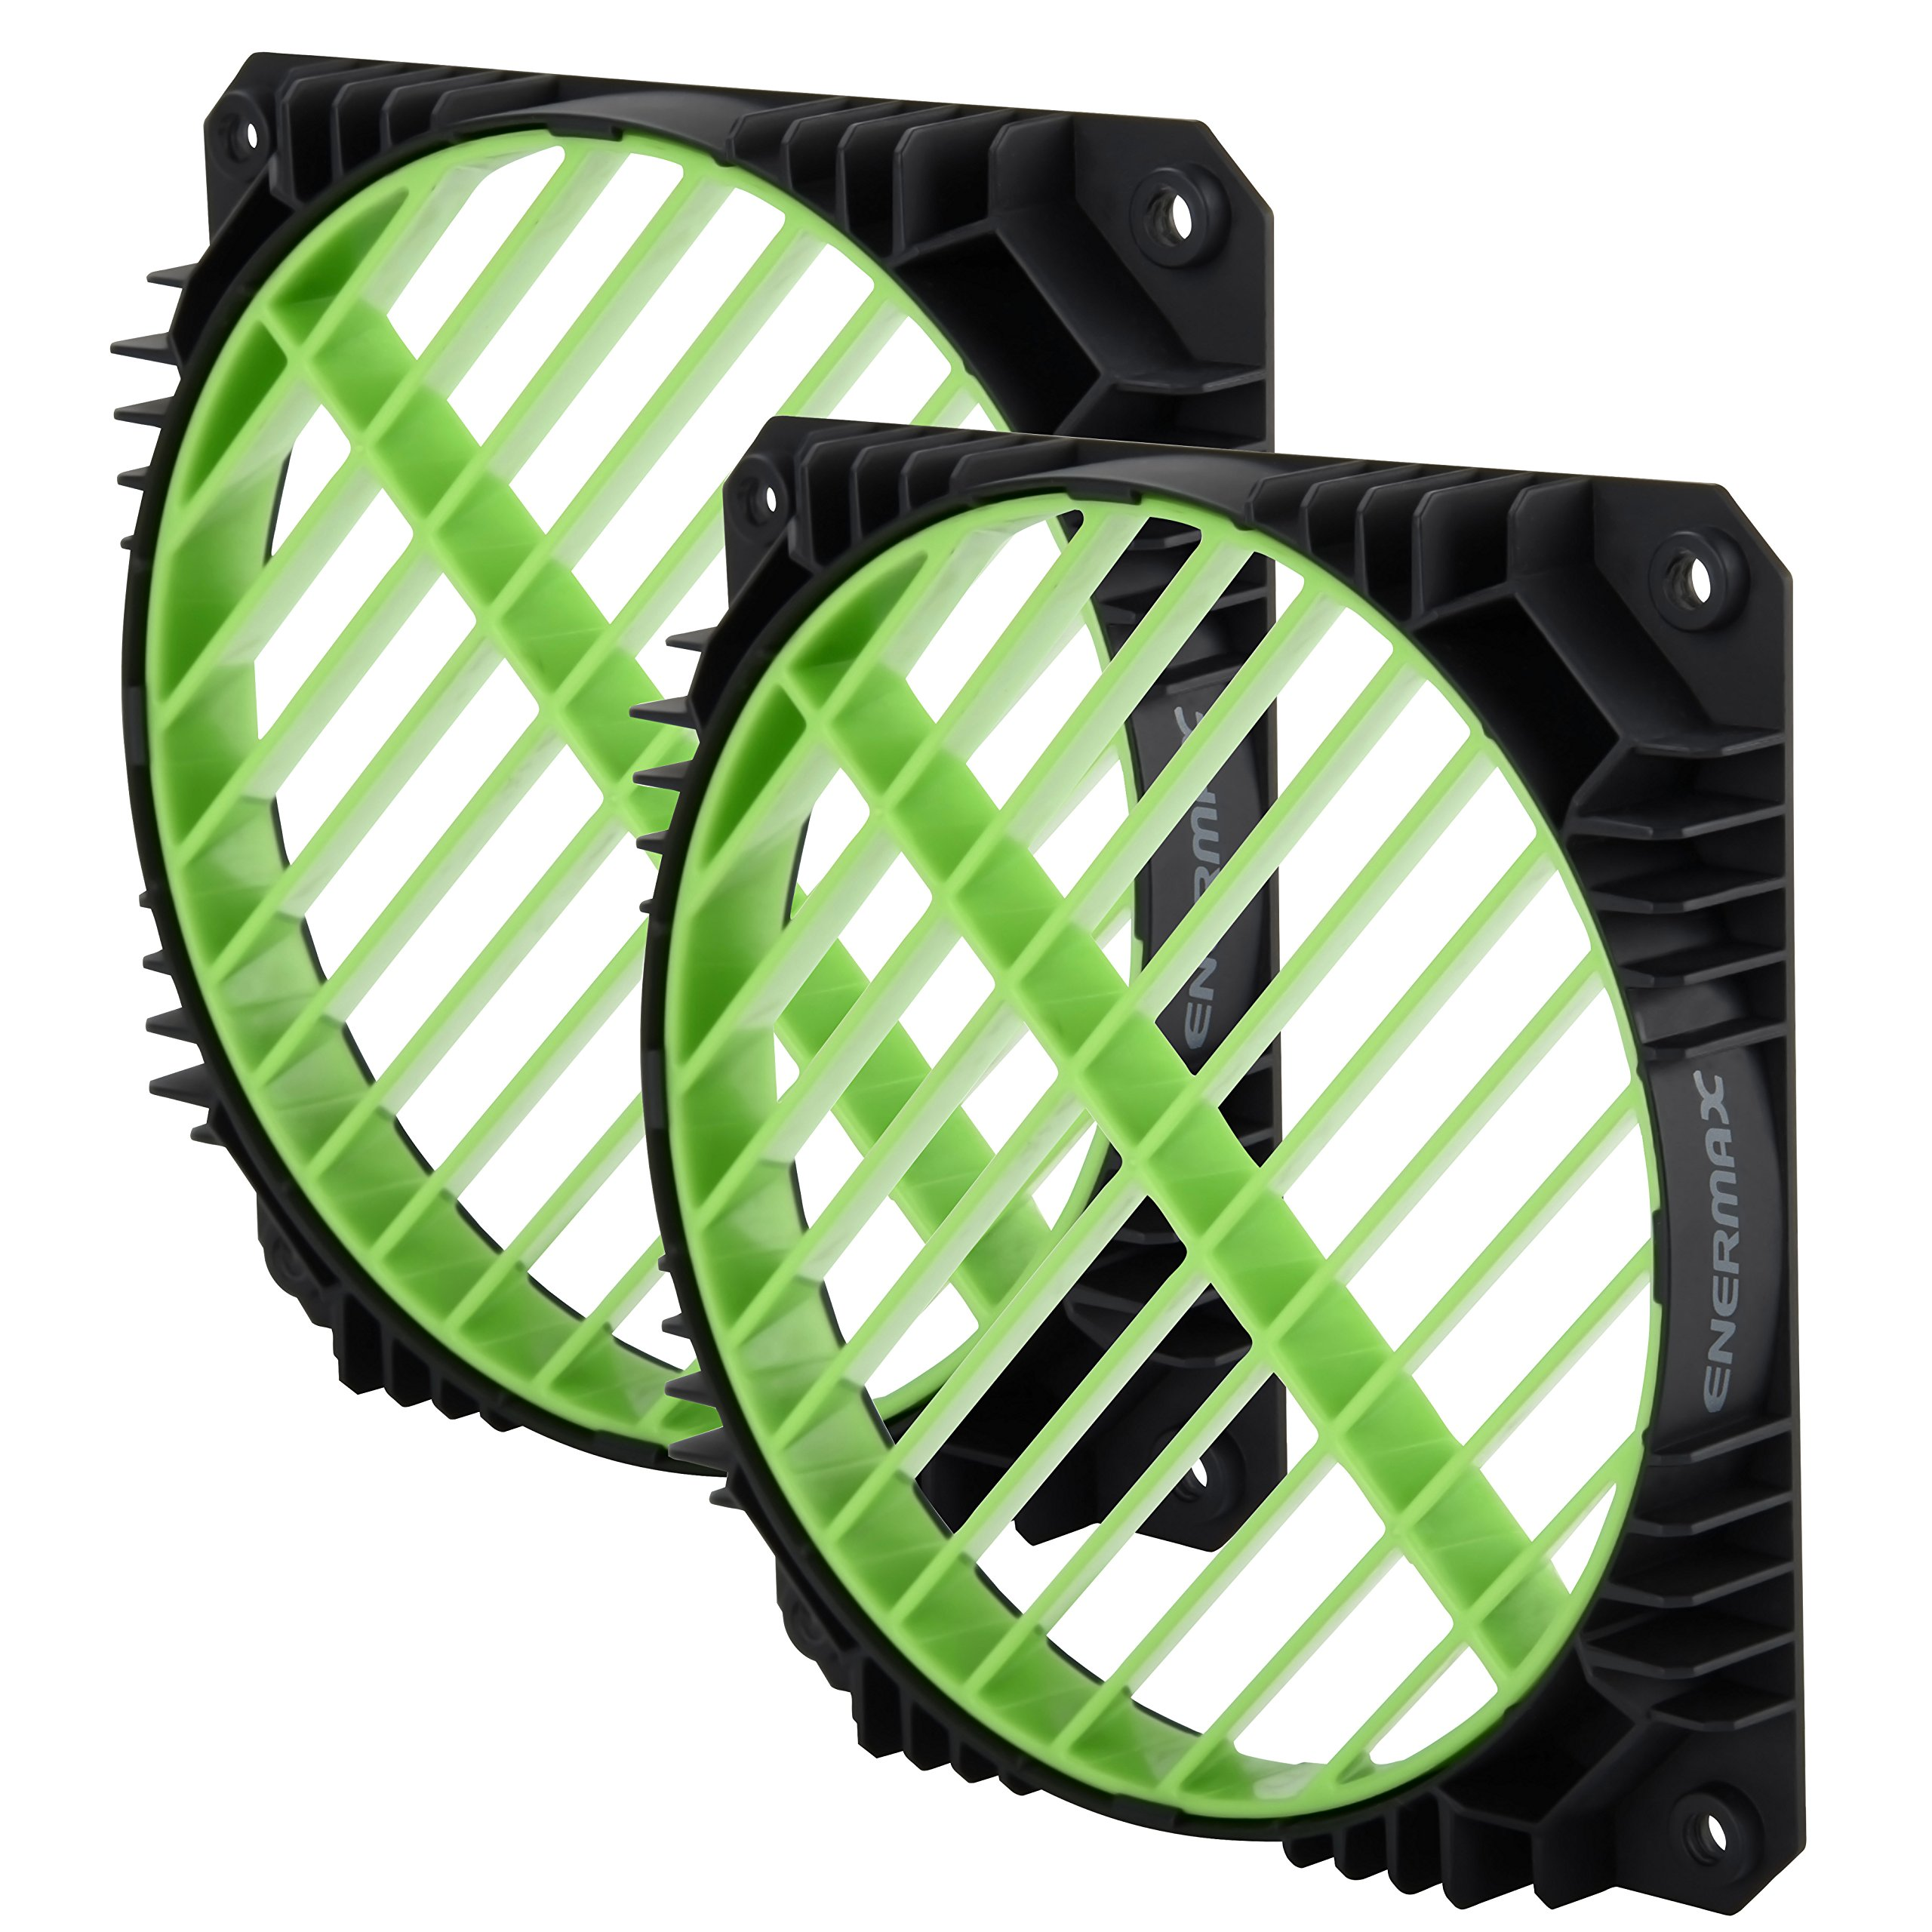 Enermax Air Guide 360° Rotatable Fan Grill, Solution to Airflow Management Twin Pack Green, EAG001-G by Enermax (Image #1)